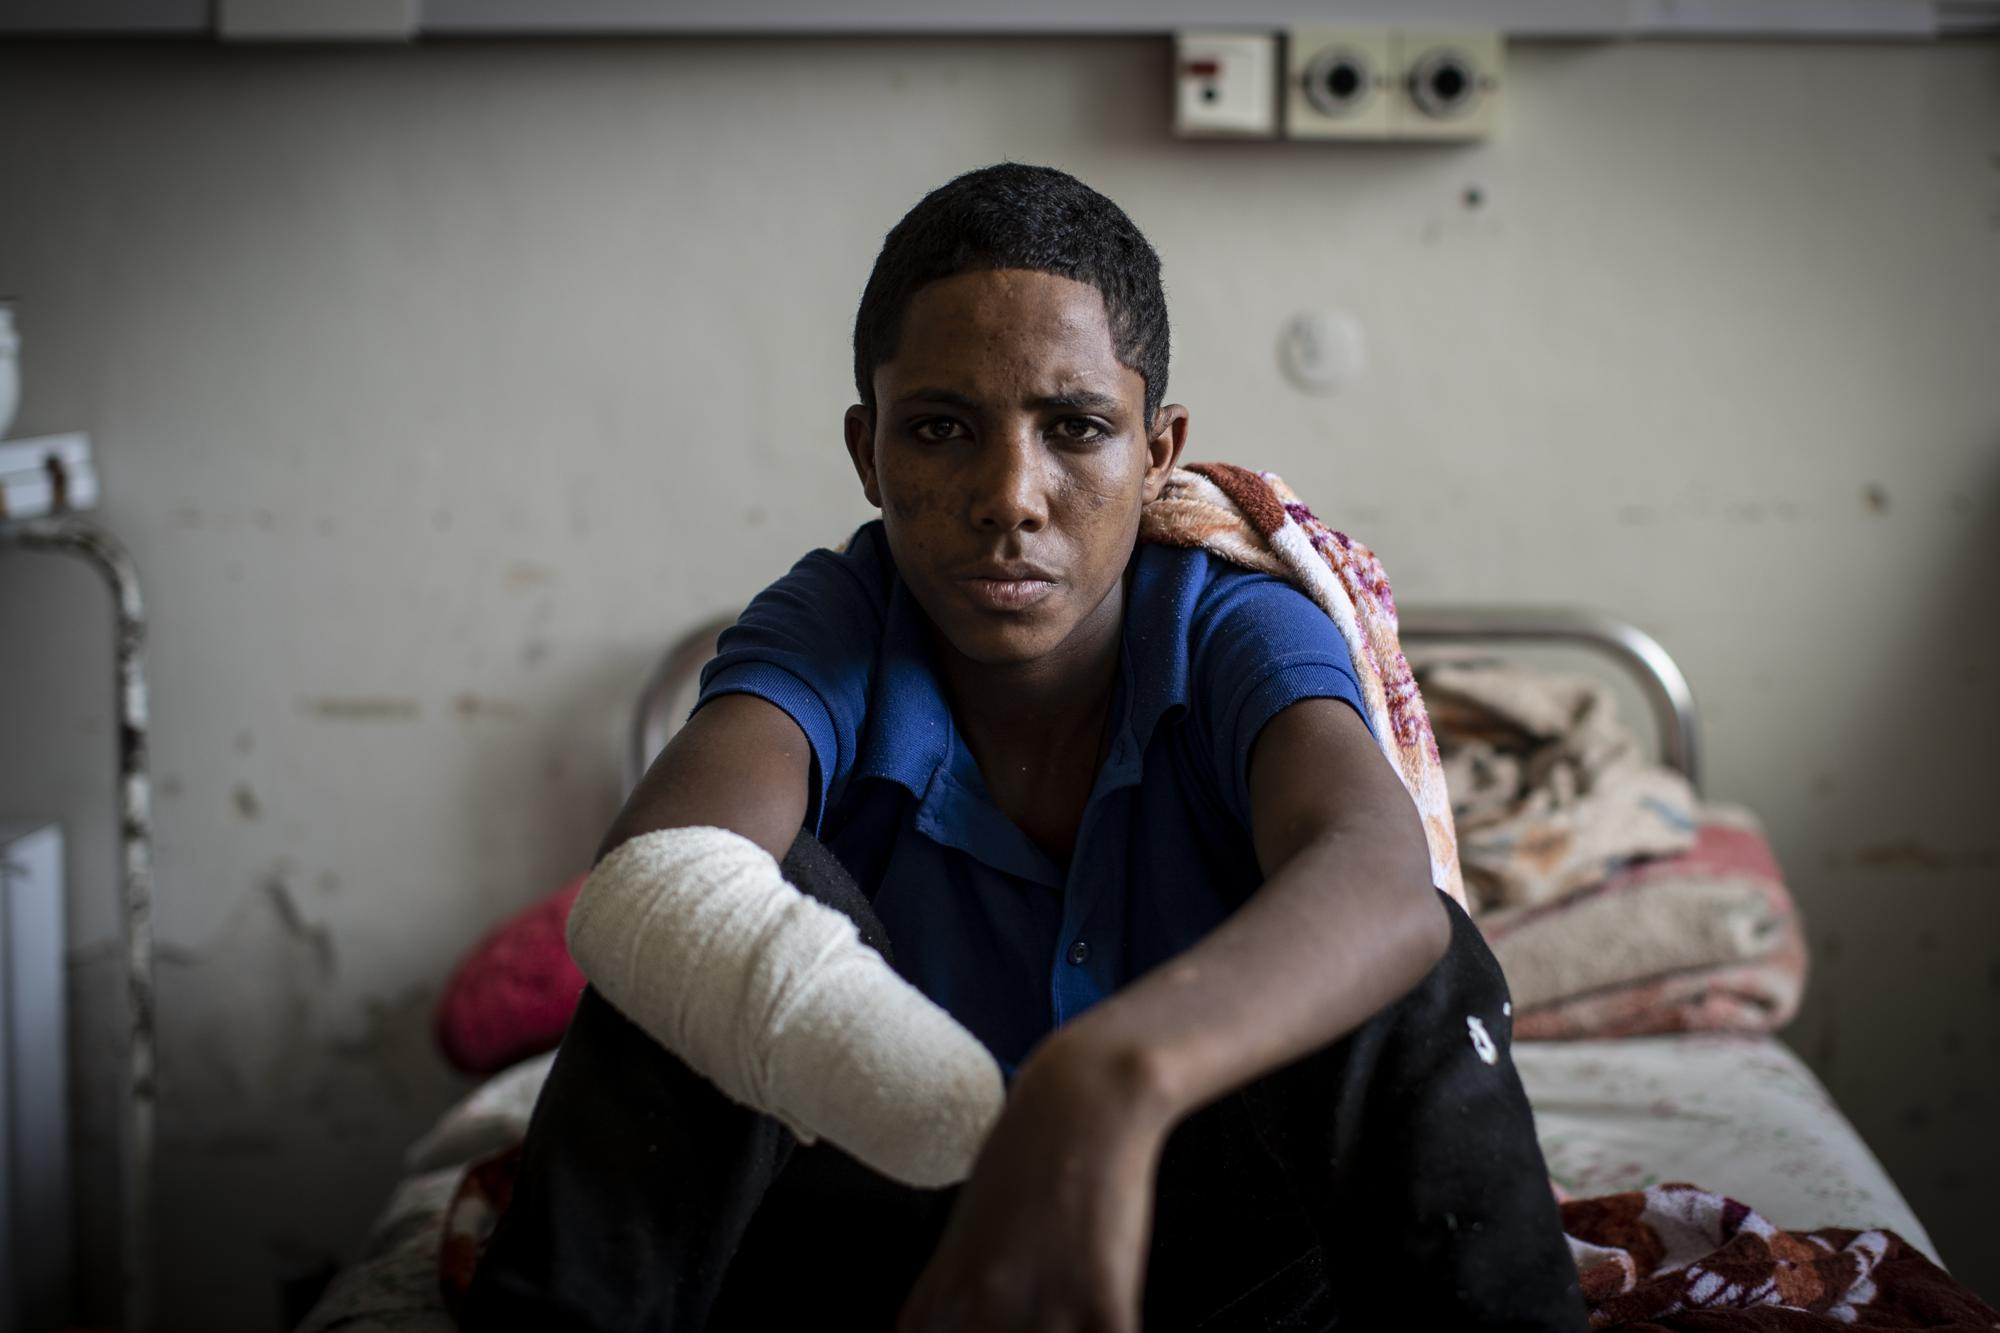 """Haftom Gebretsadik, a 17-year-old from Freweini, Ethiopia, near Hawzen, who had his right hand amputated and lost fingers on his left after an artillery round struck his home in March, sits on his bed at the Ayder Referral Hospital in Mekele, in the Tigray region of northern Ethiopia, on Thursday, May 6, 2021. """"I am very worried,"""" he said. """"How can I work?"""" (AP Photo/Ben Curtis)"""